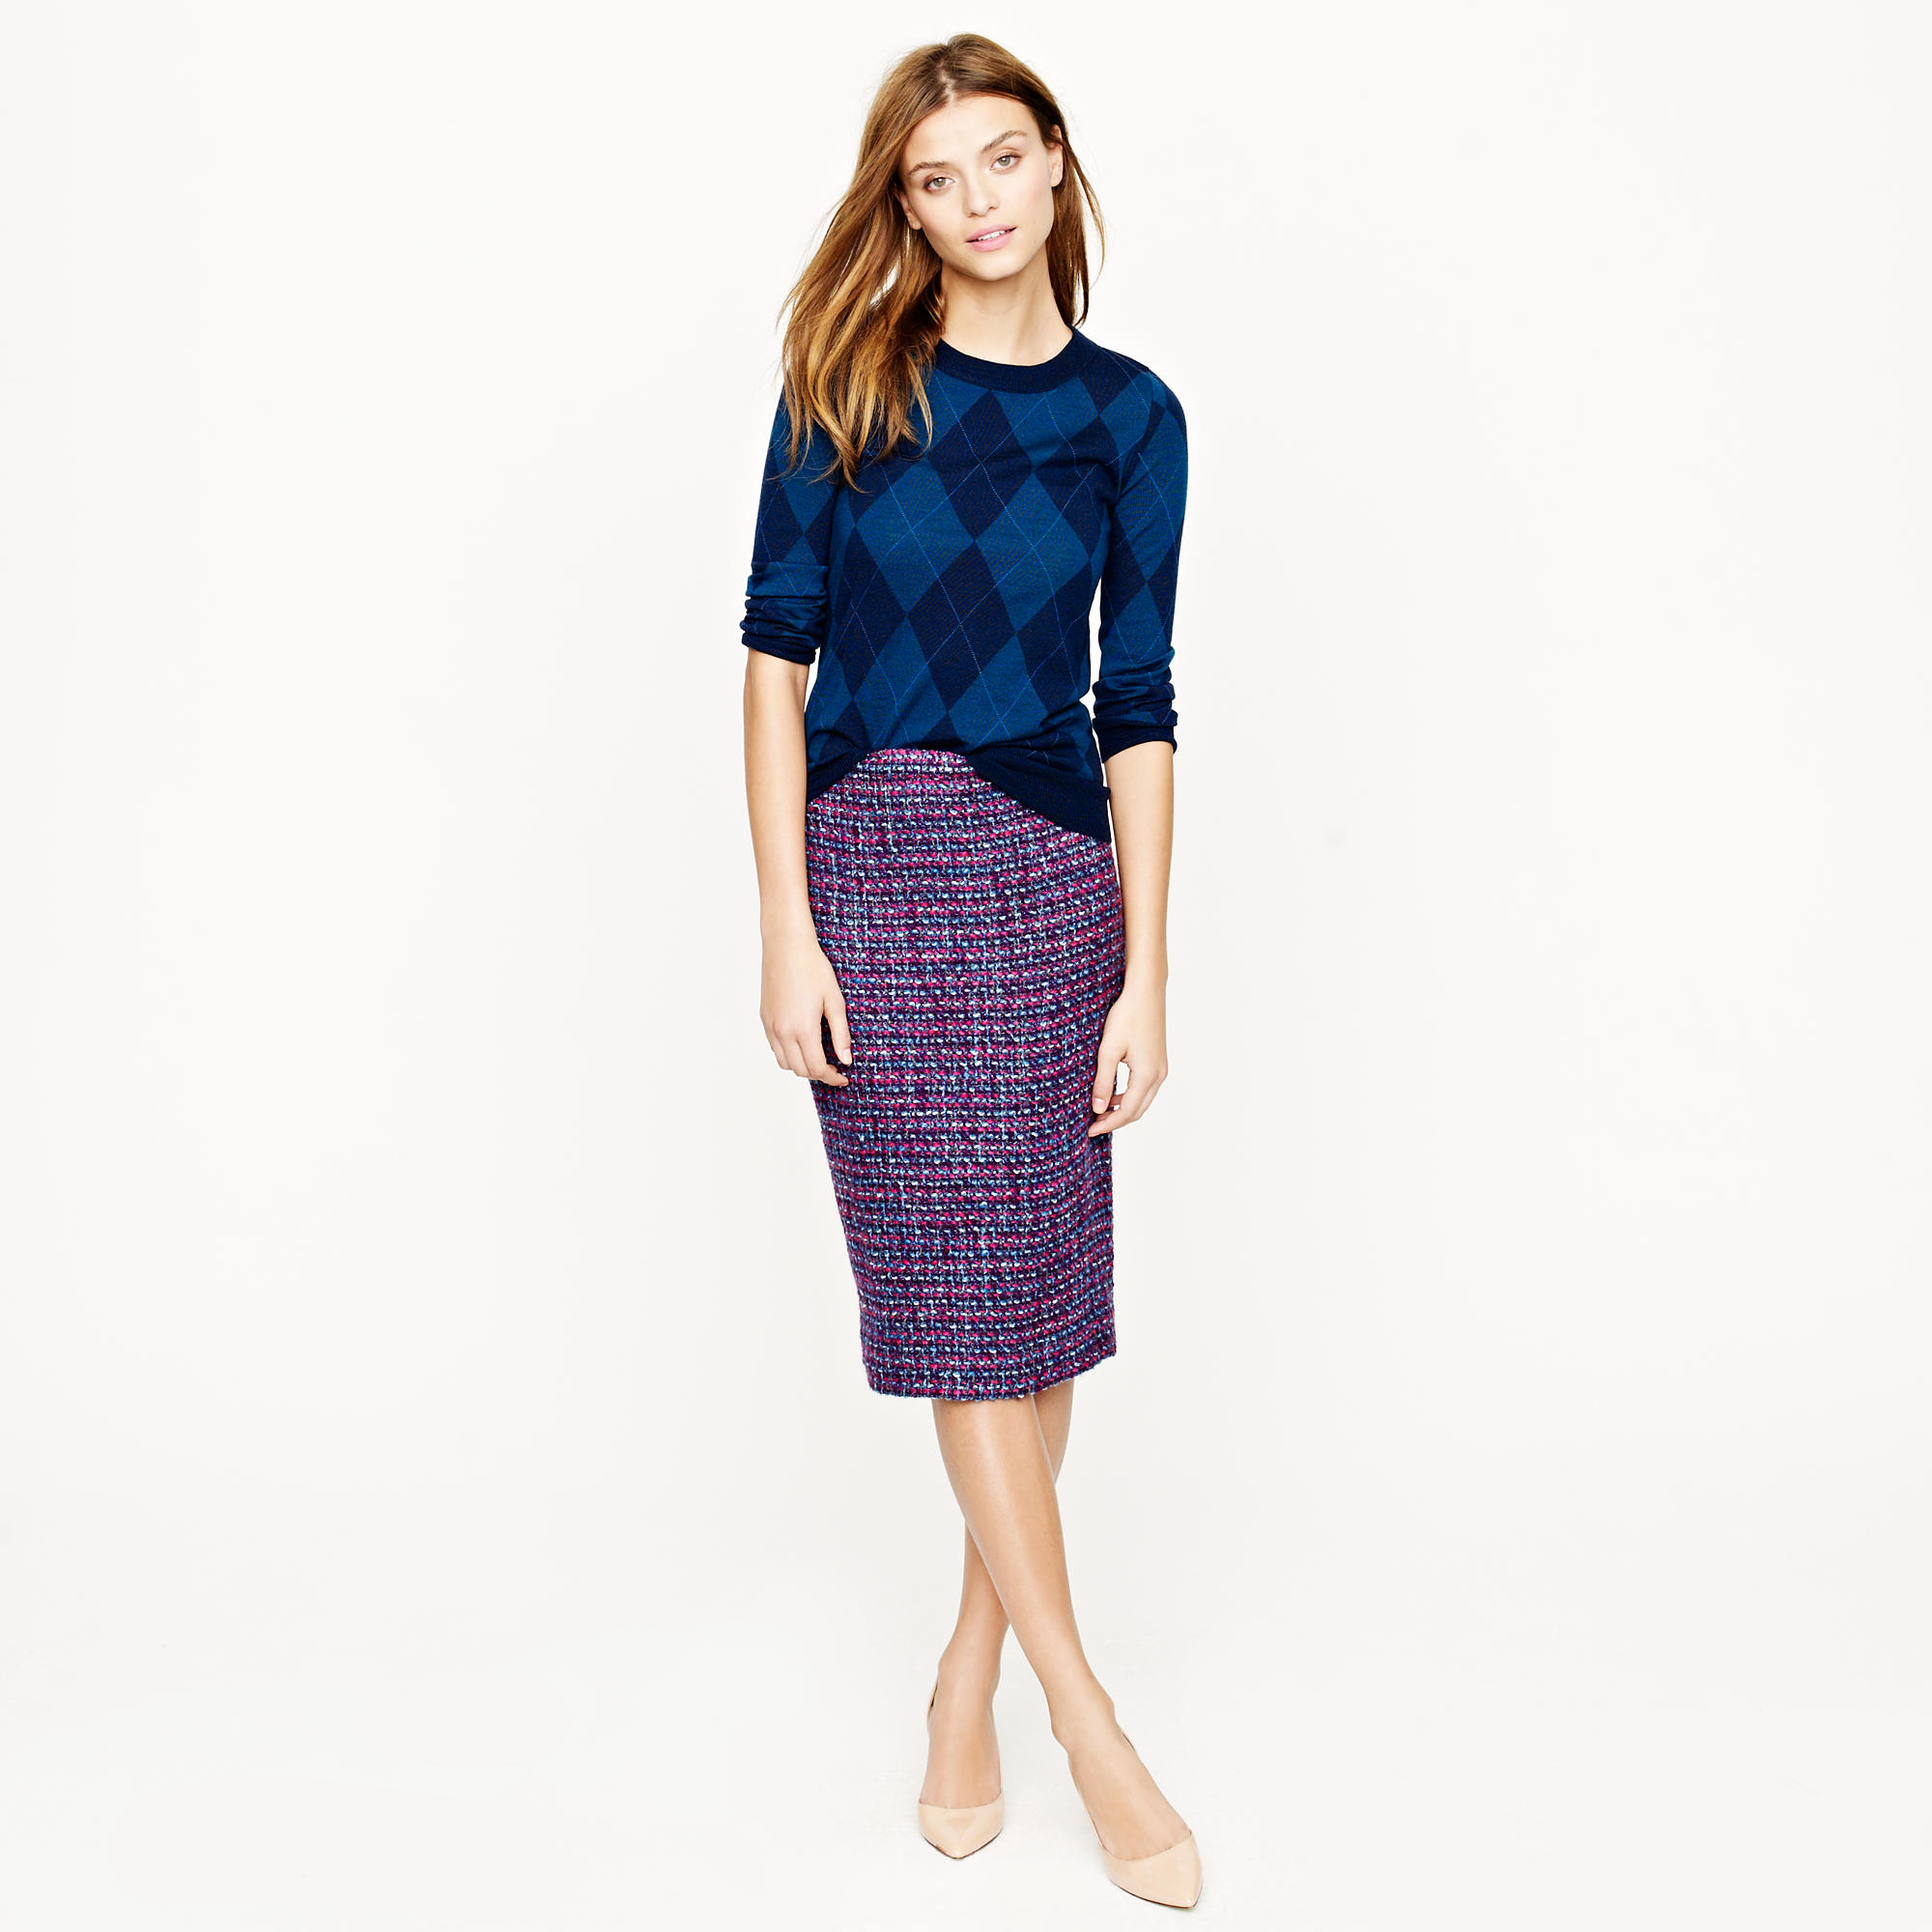 No. 2 pencil skirt in multicolor tweed : Women pencil | J.Crew